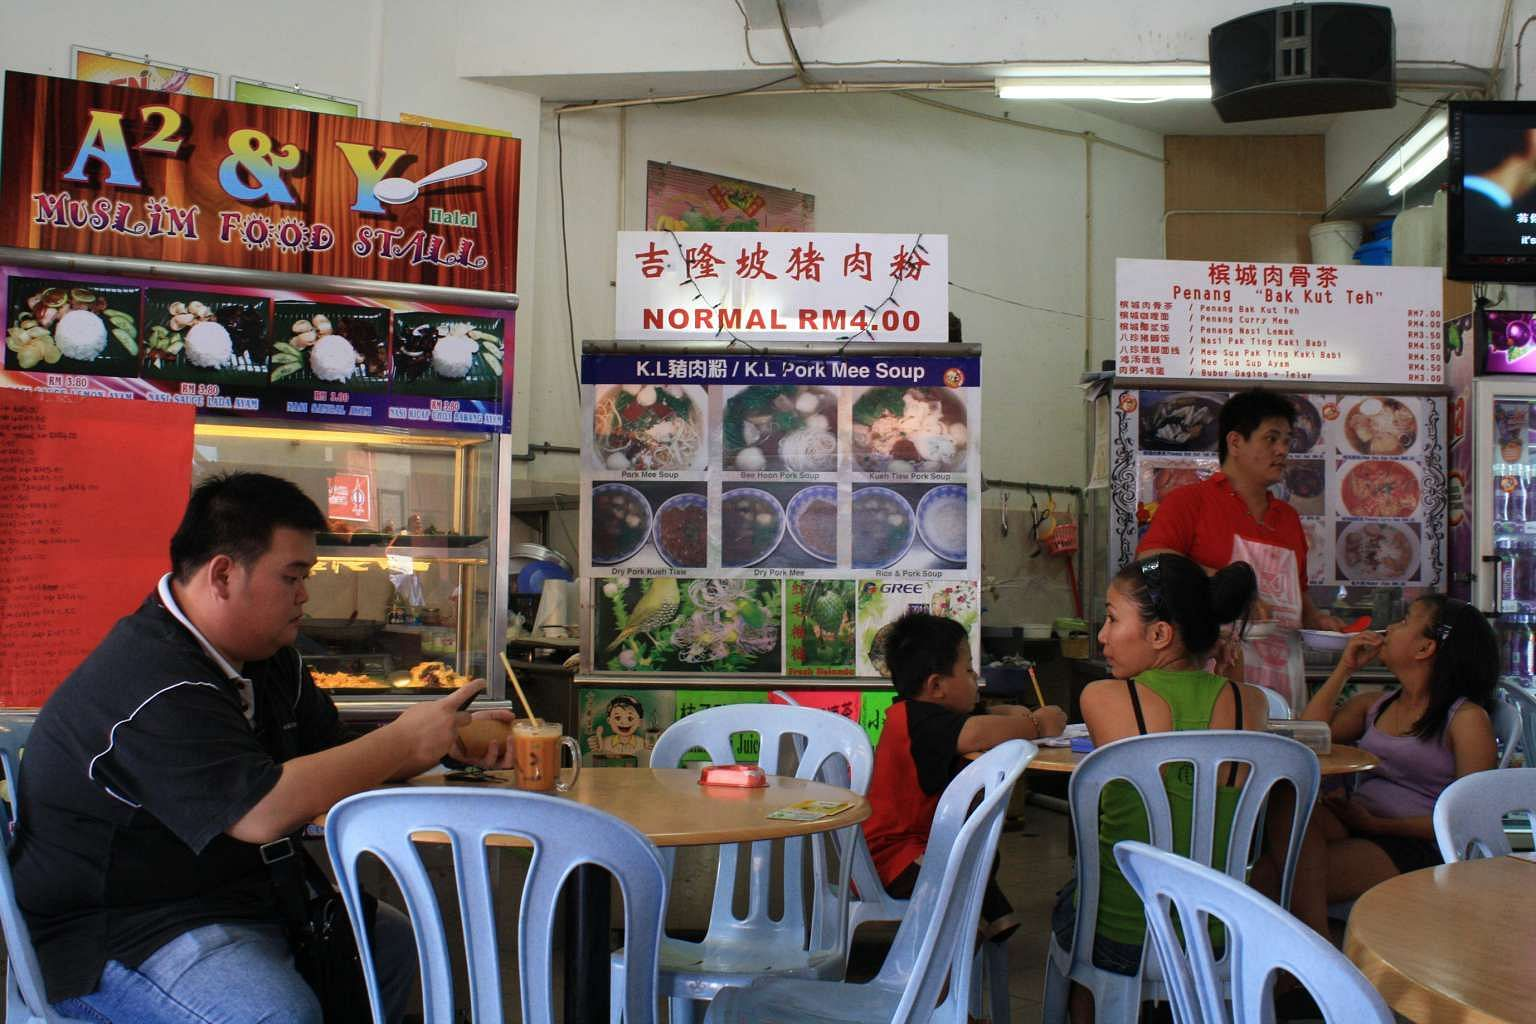 A coffee shop in Sibu, Sarawak, where a Muslim food stall stands beside a pork mee soup stall and another selling bak kut teh (pork rib soup).